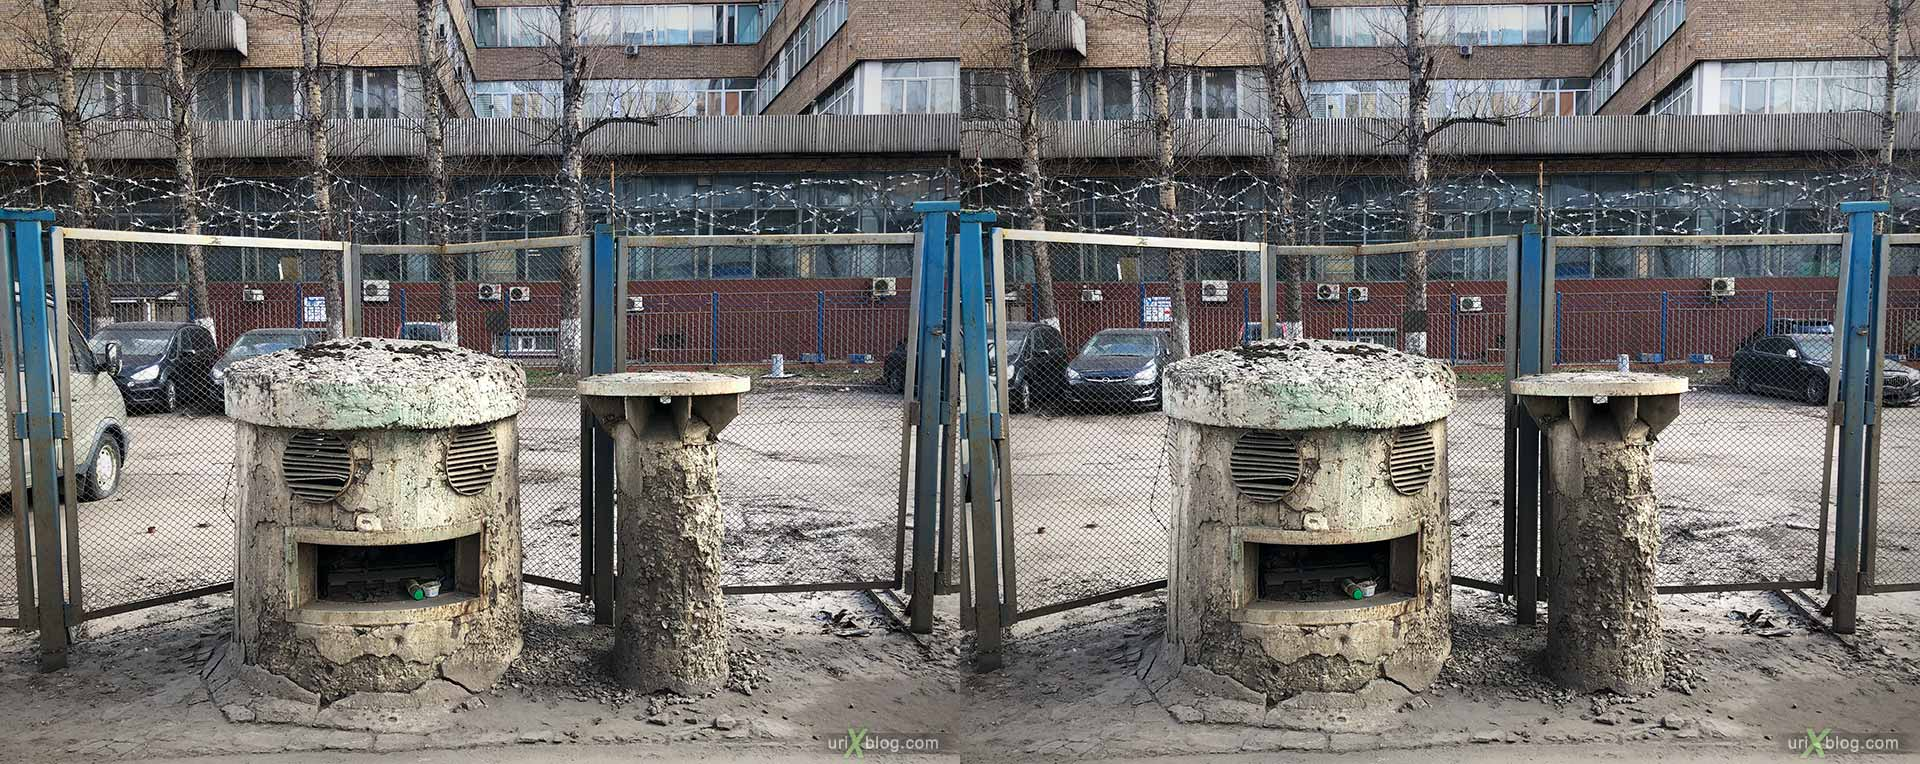 🤖, ventilation, robot, head, fence, Moscow, Russia, 3D, stereo pair, cross-eyed, crossview, cross view stereo pair, stereoscopic